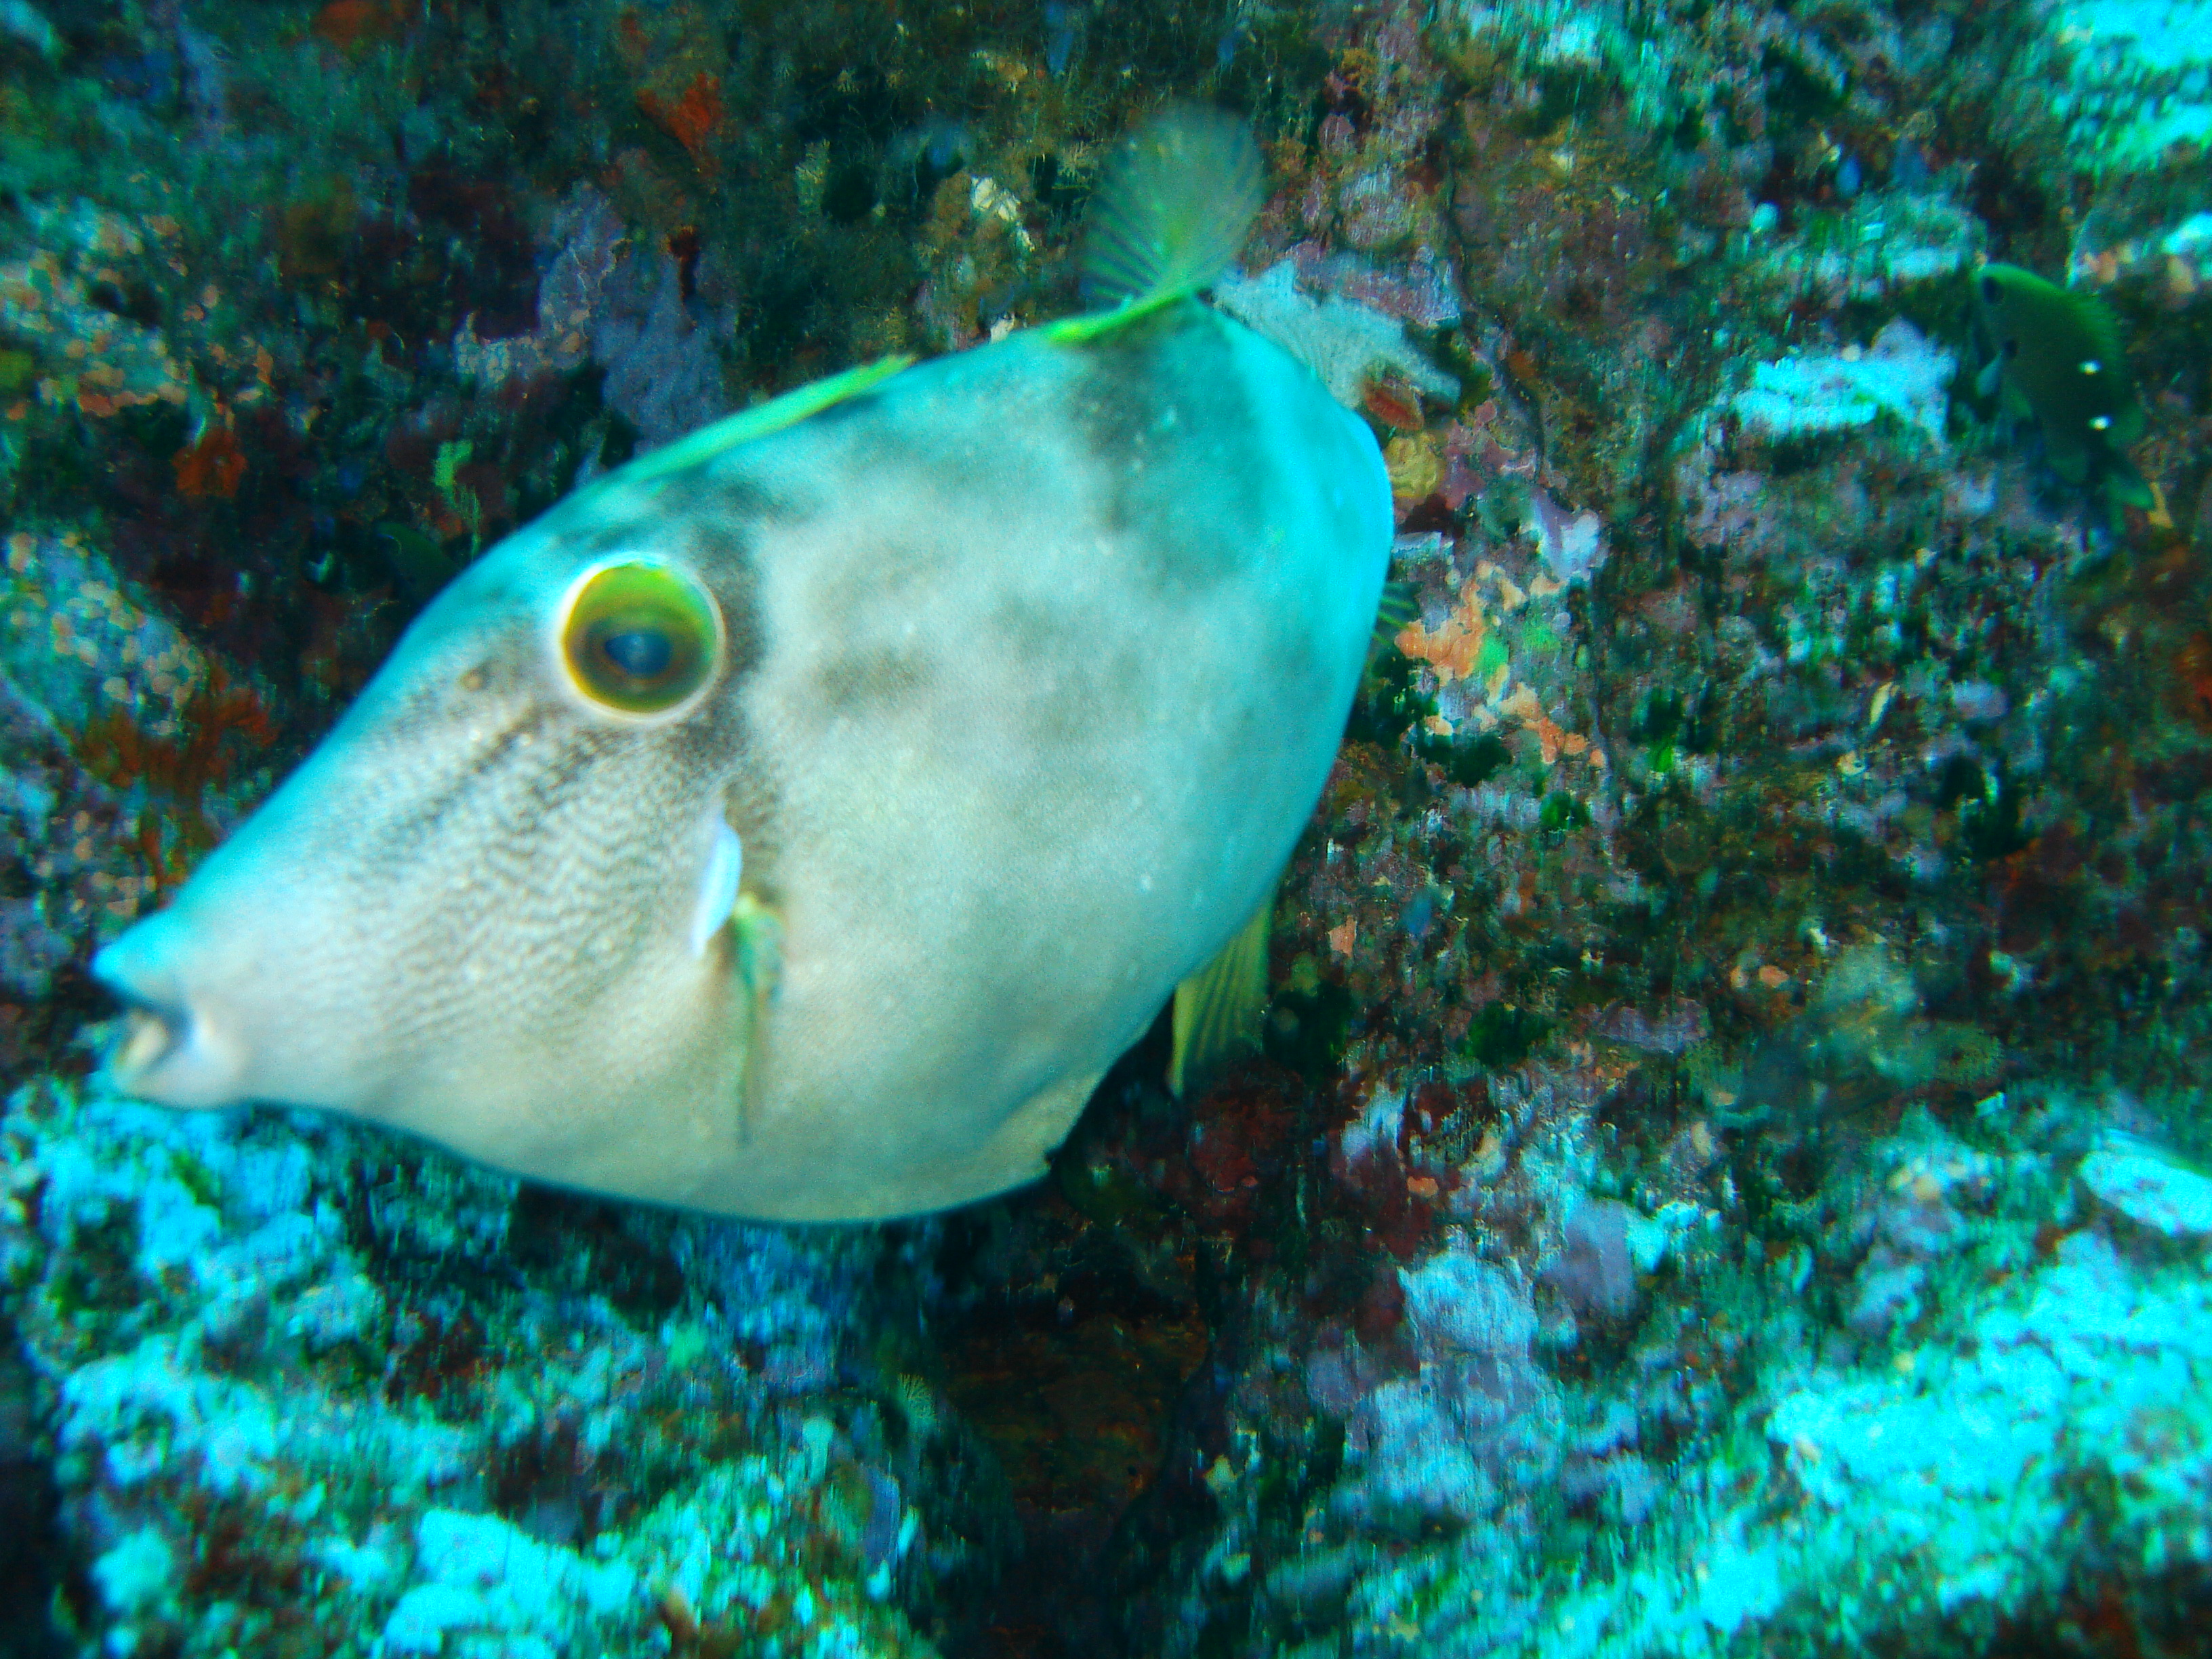 Marine nature conservation must focus on fully-protected reserves, not resource management